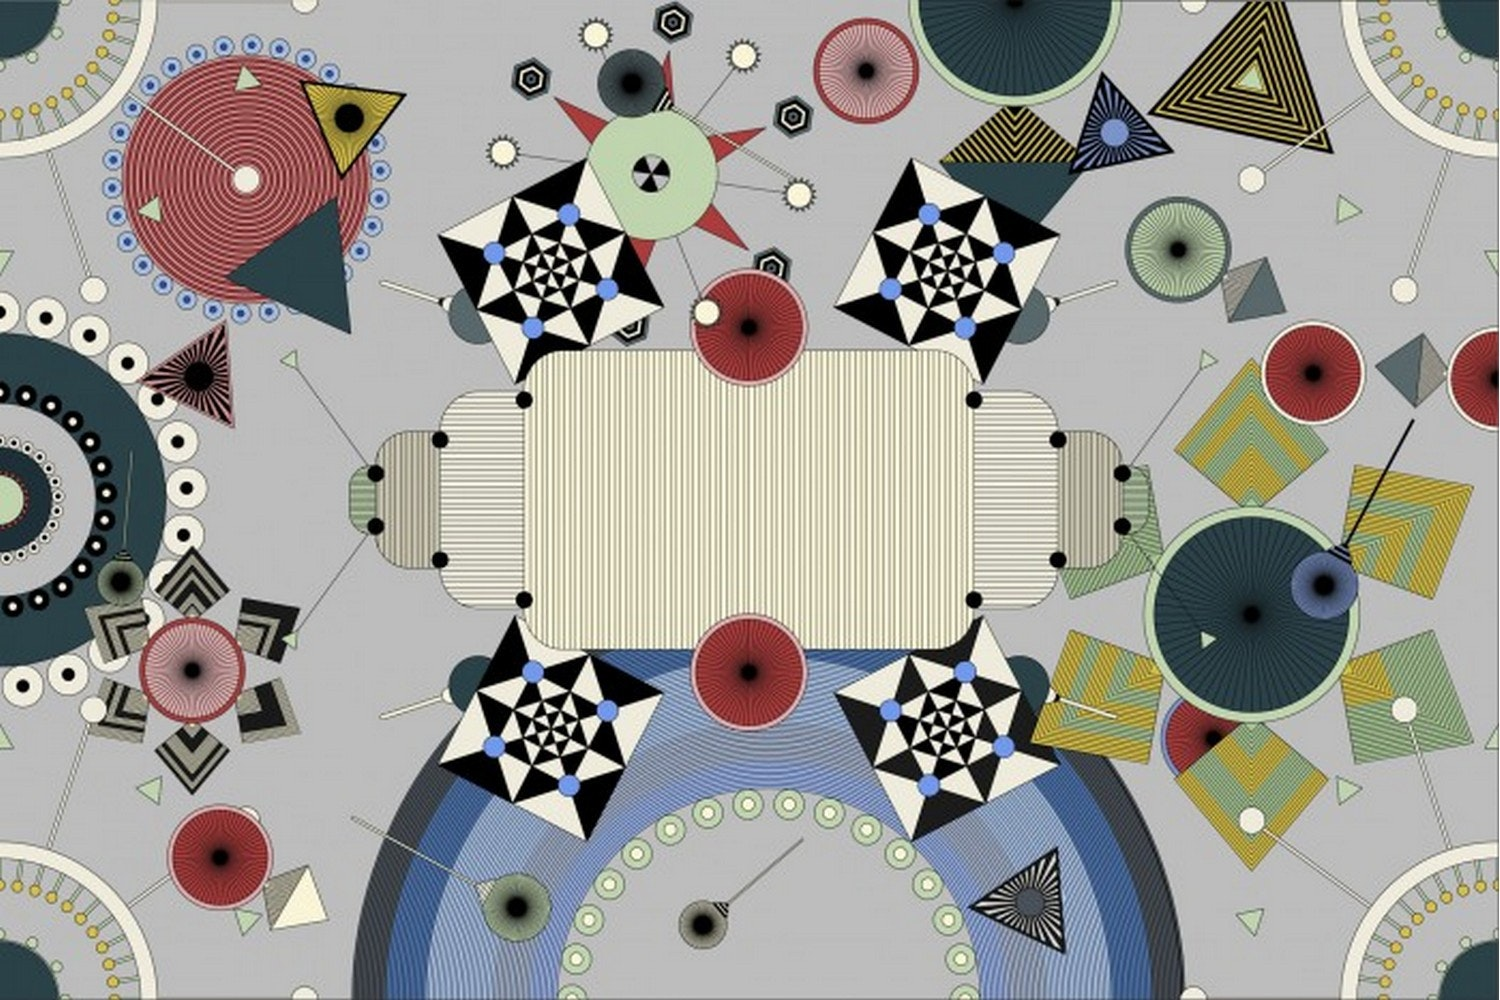 Dreamstatic Rug by David/Nicolas for Moooi Carpets